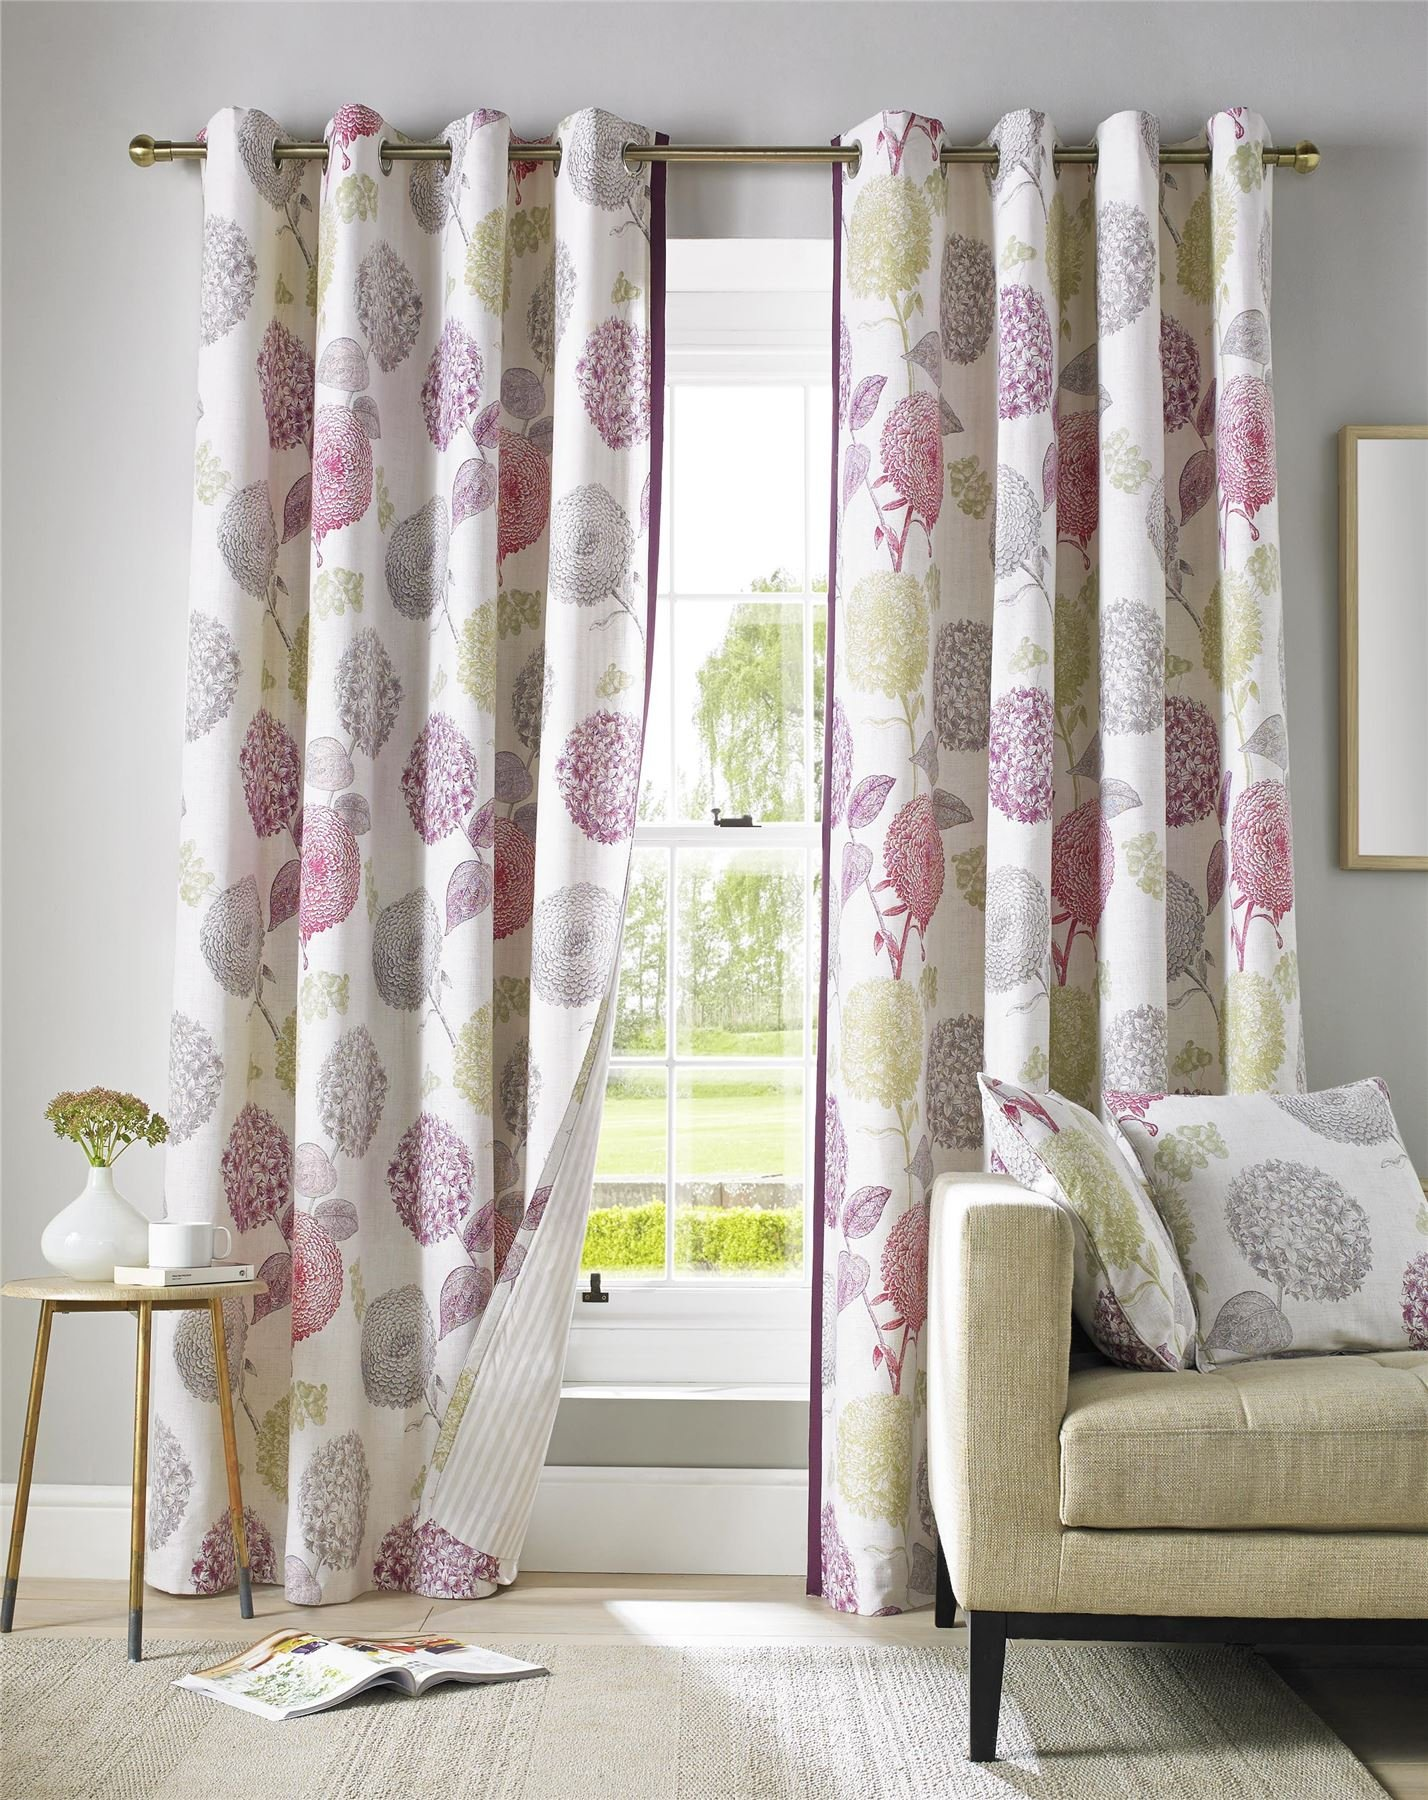 Homescapes Pink Green Grey And Cream Floral Curtain Pair Contemporary Design Fully Lined Eyelet